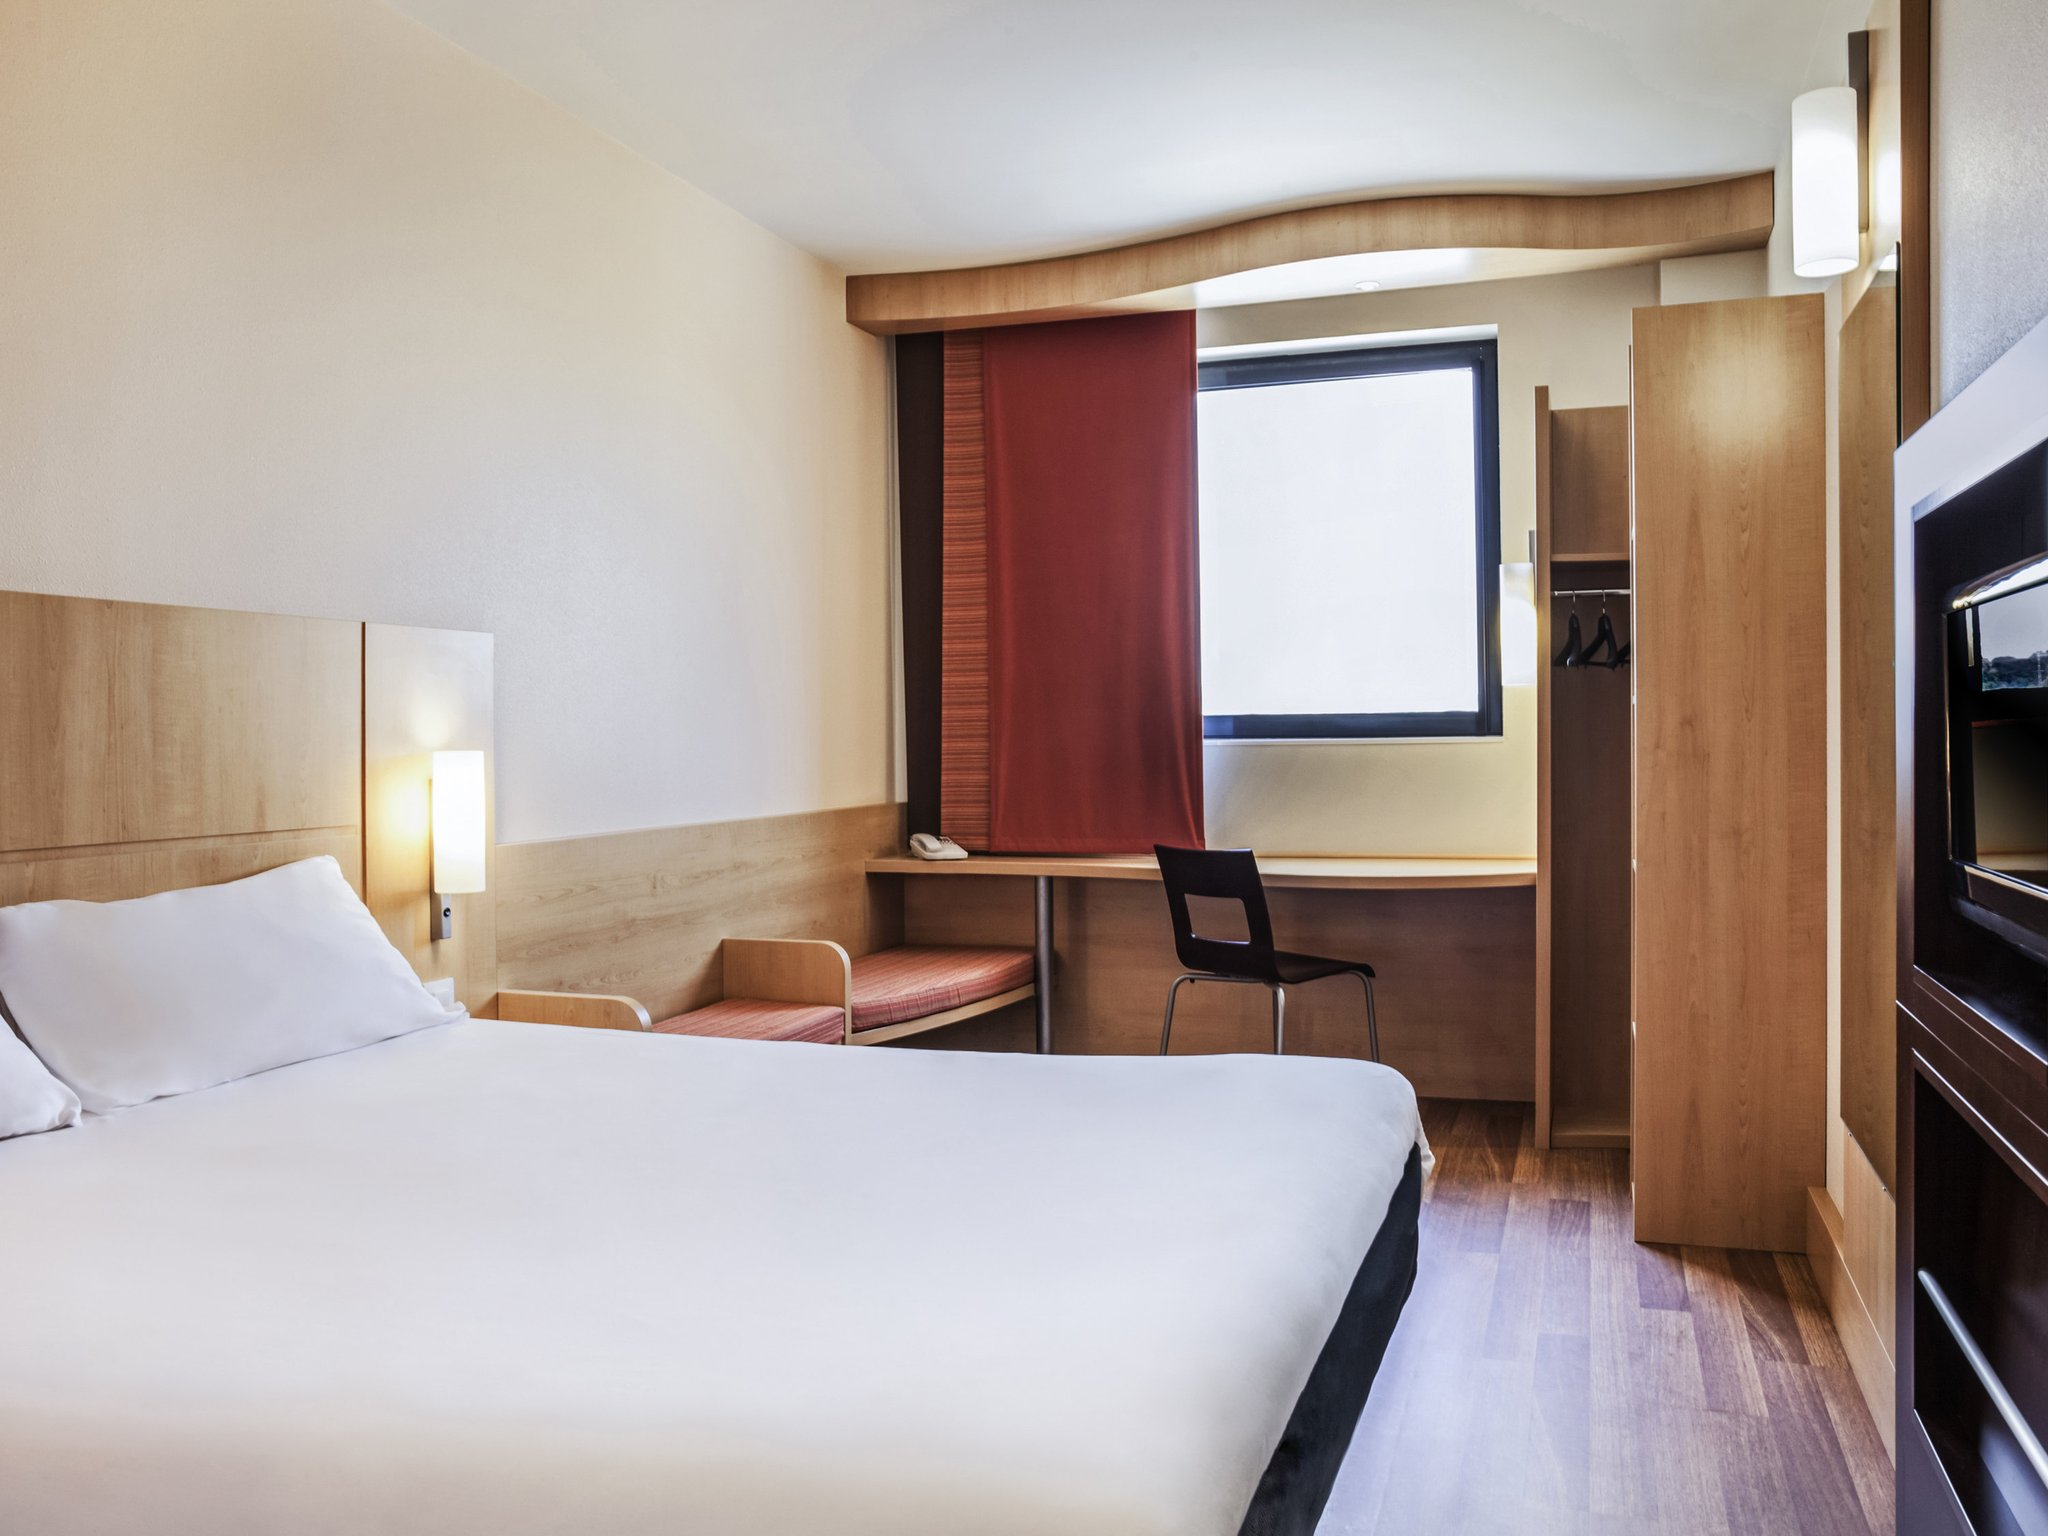 Hotel Ibis Barcelona Ripollet